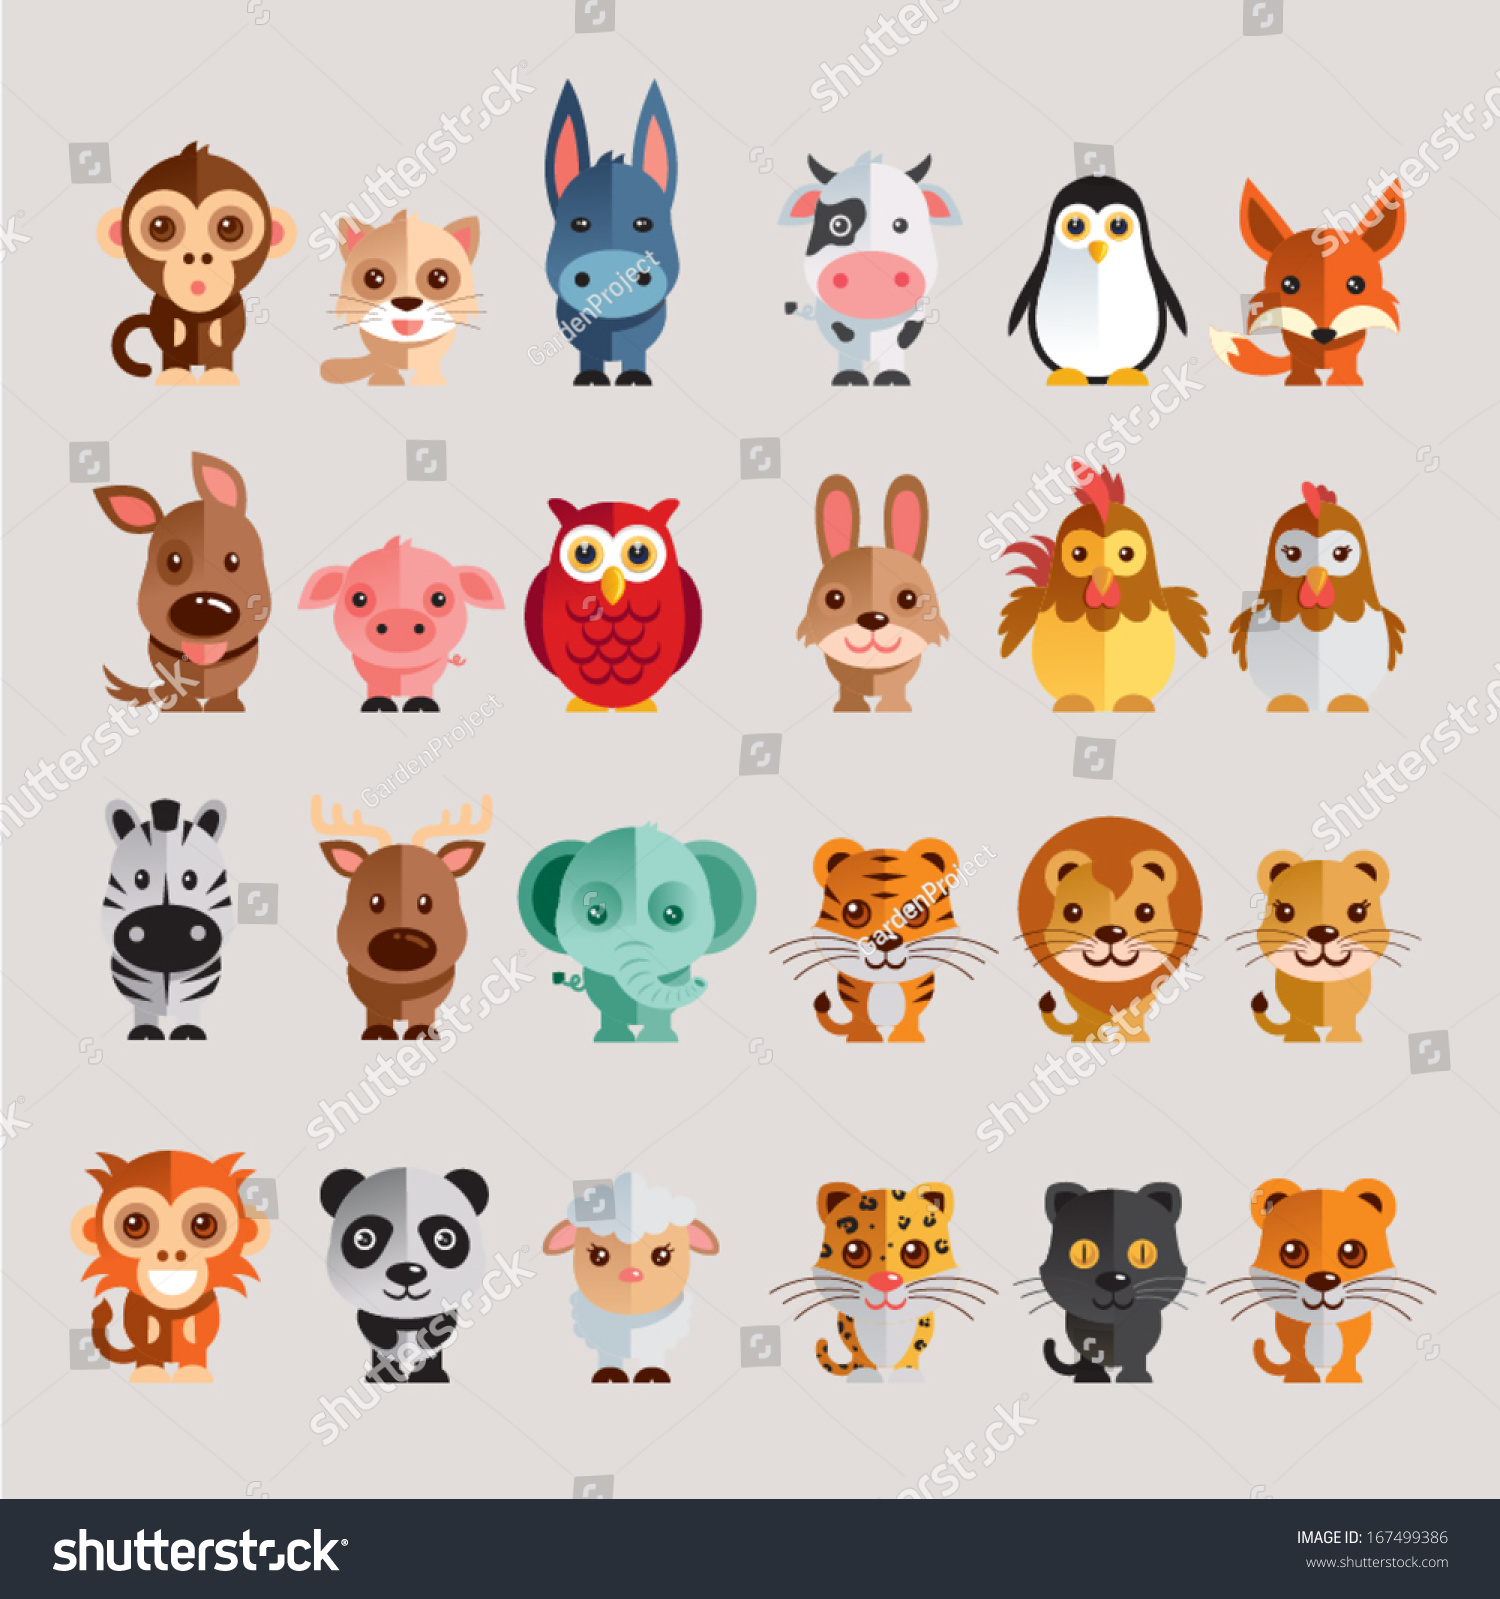 funny animal vector illustration icon set stock vector 167499386